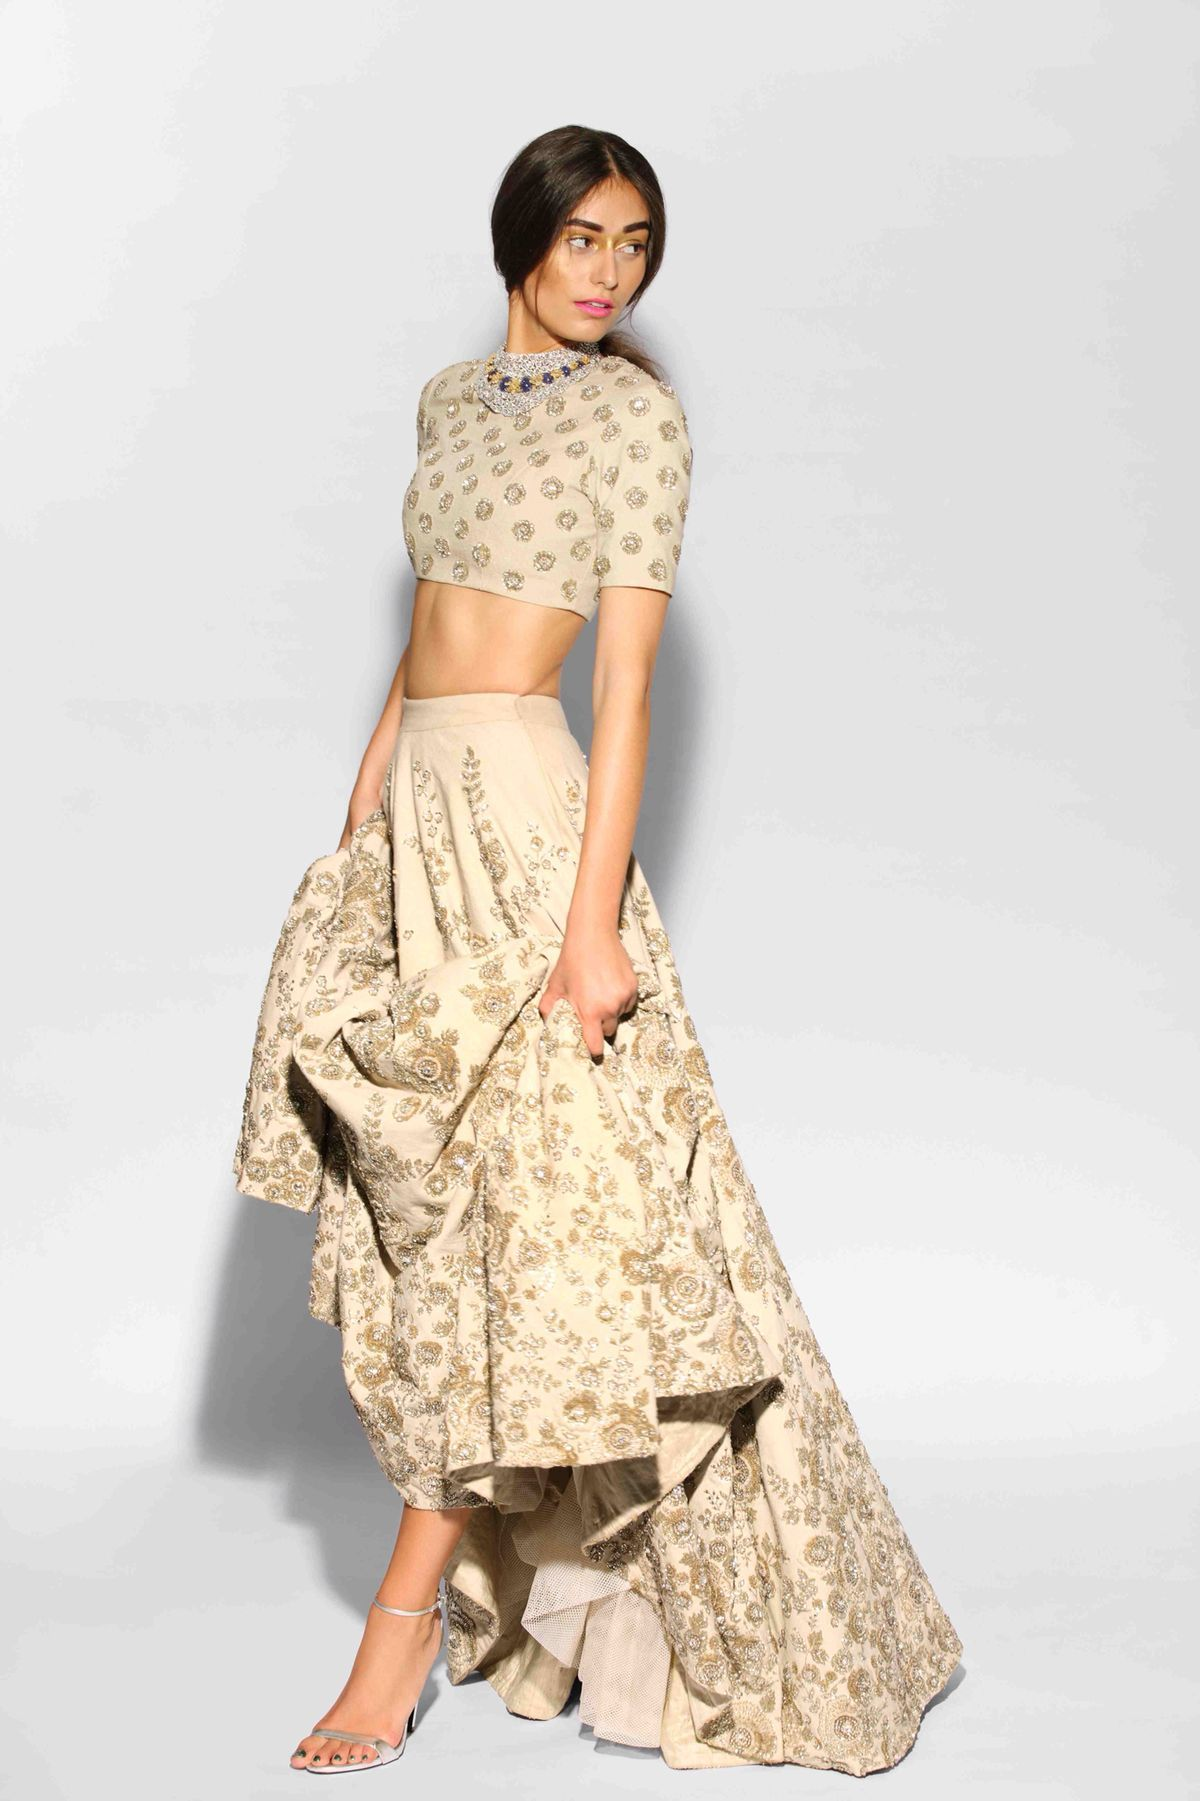 924c90a81bfca Cream crop top lehenga. Indian bridal outfit